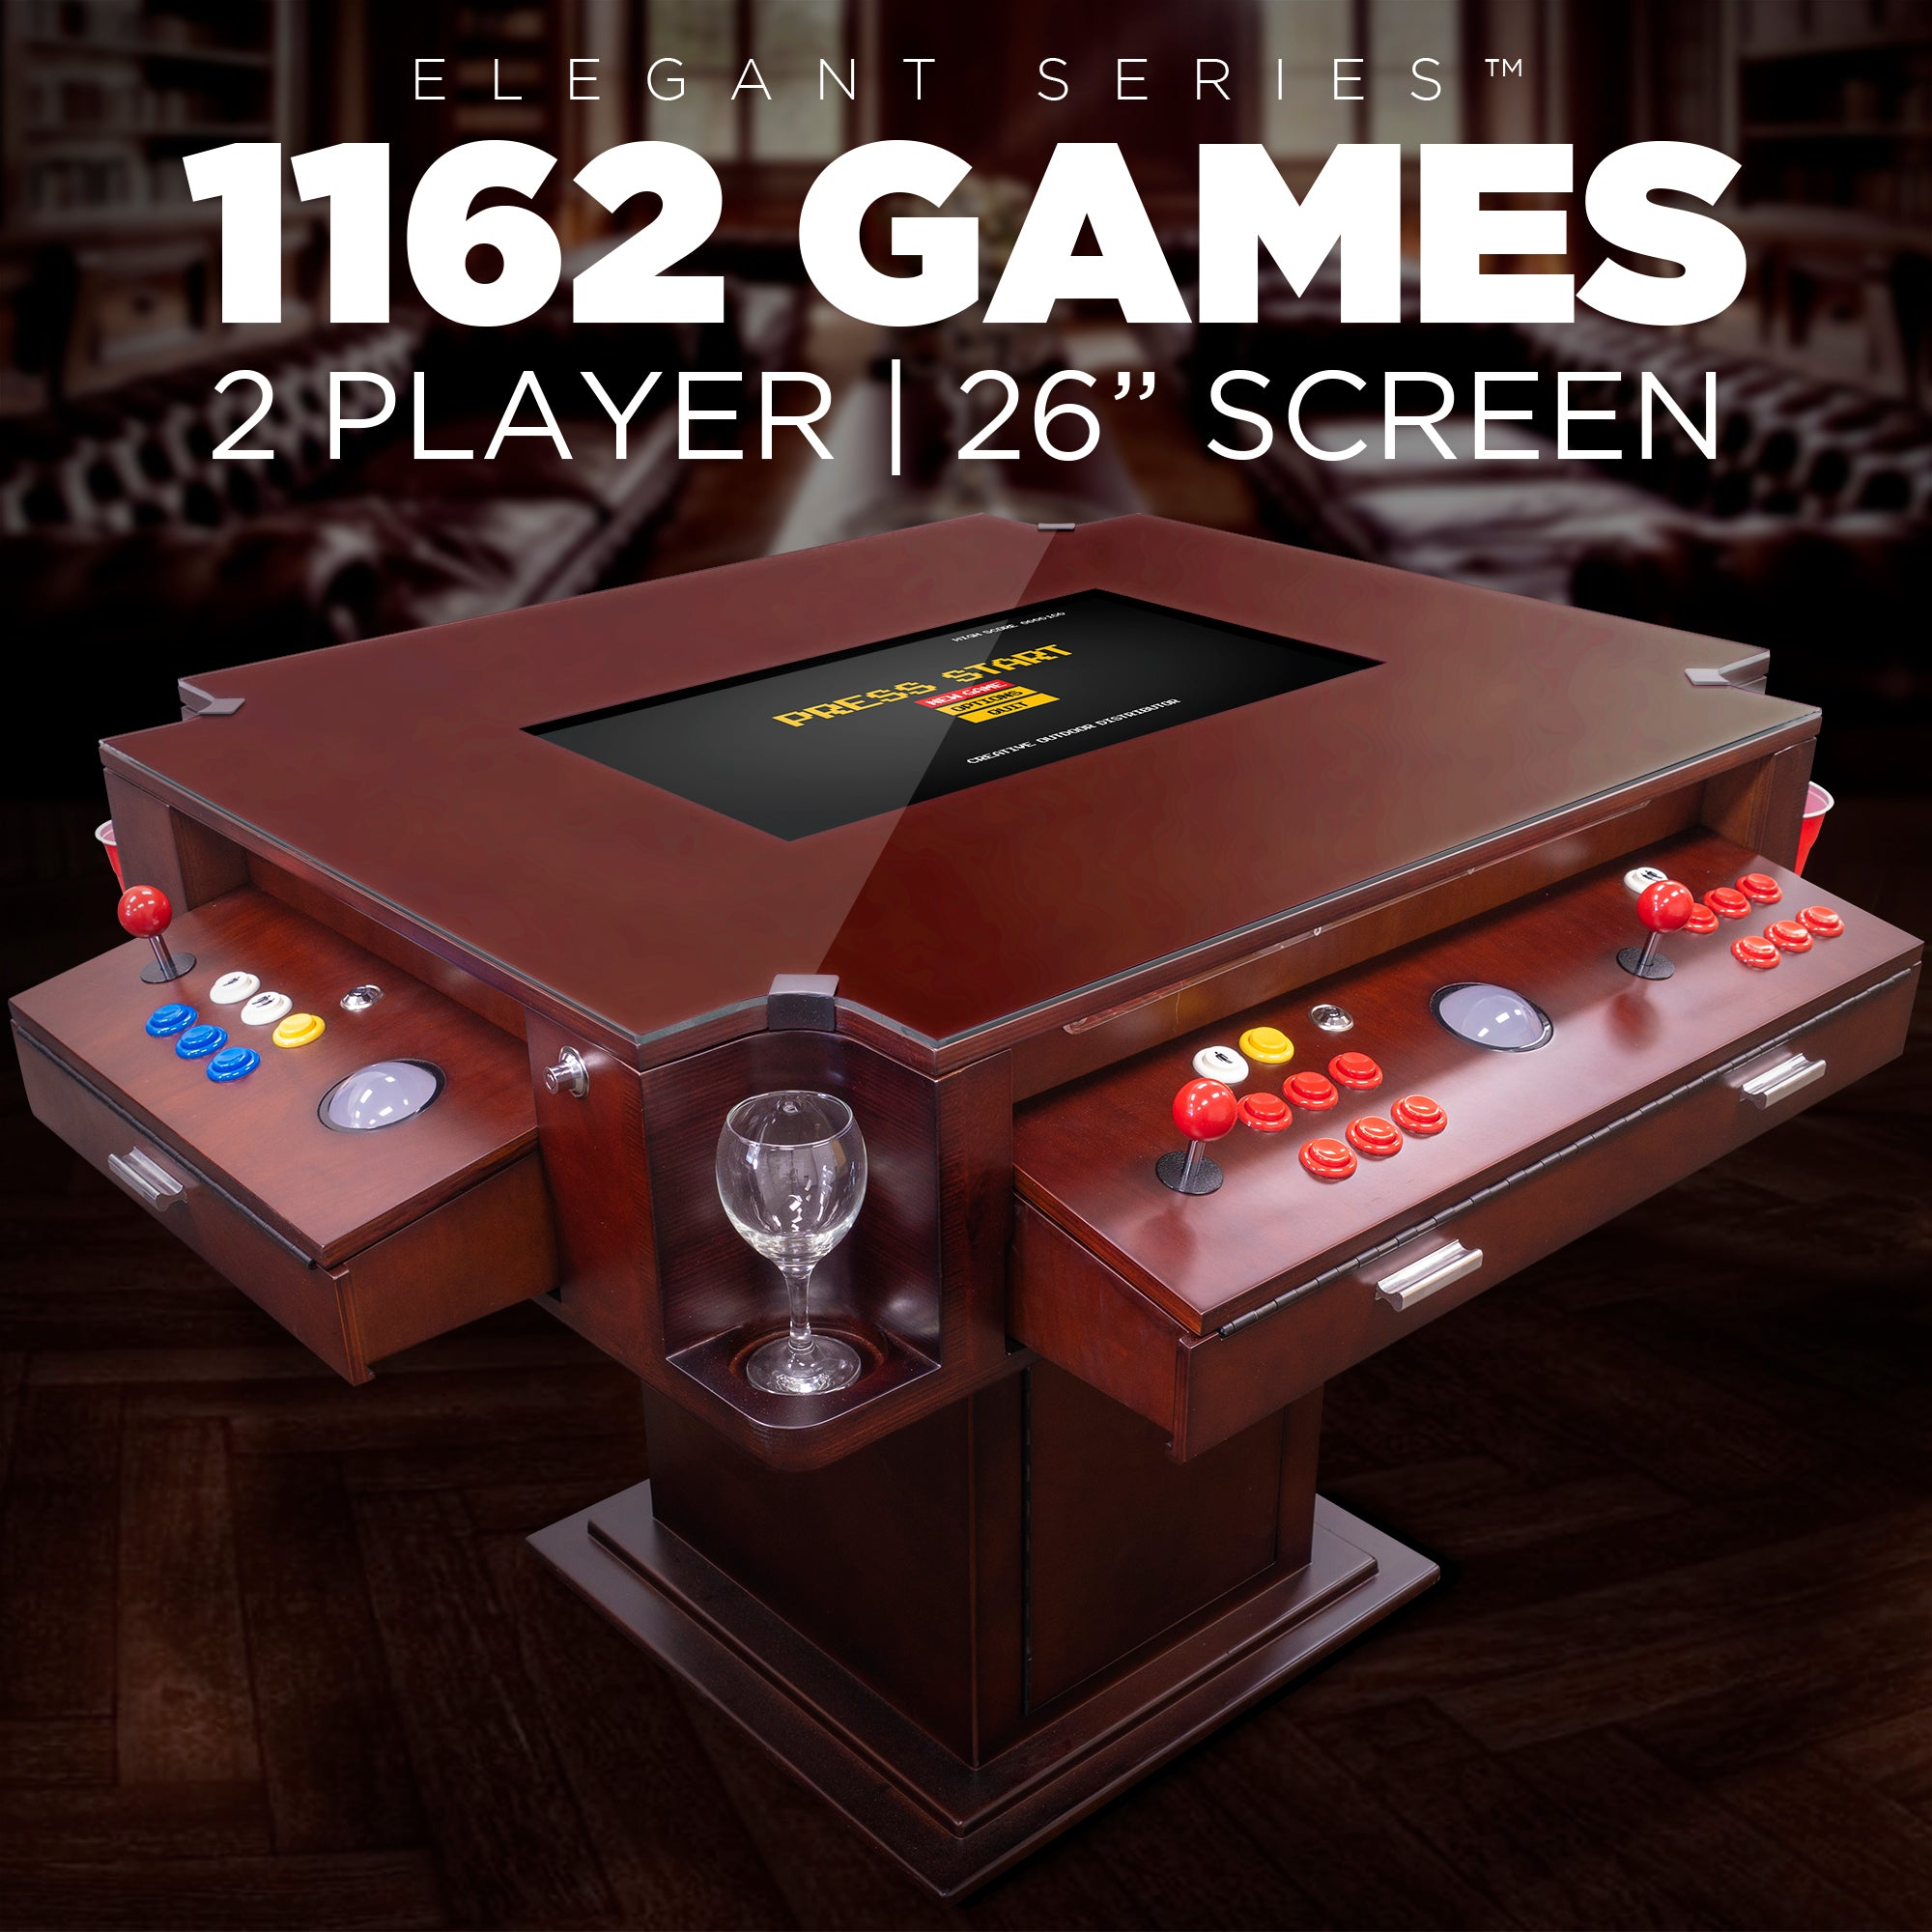 "Creative Arcades Elegant Series 2 Player 26"" Screen 1162 Games"